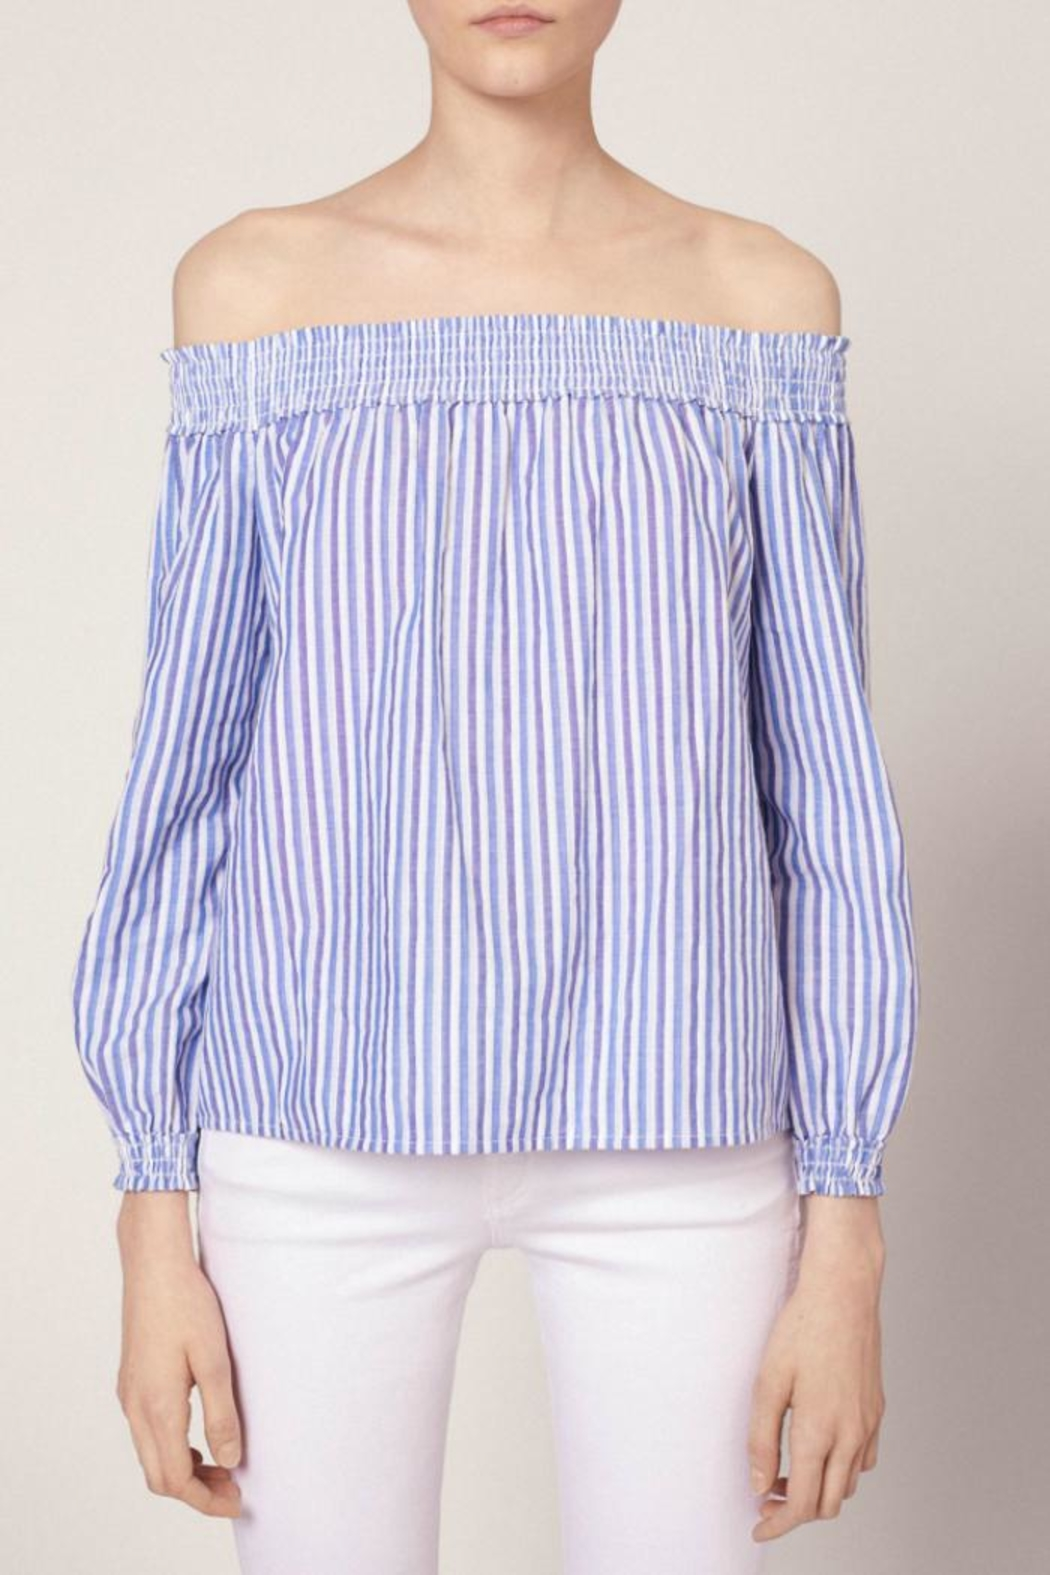 Rag & Bone Stripe Drew Top - Main Image